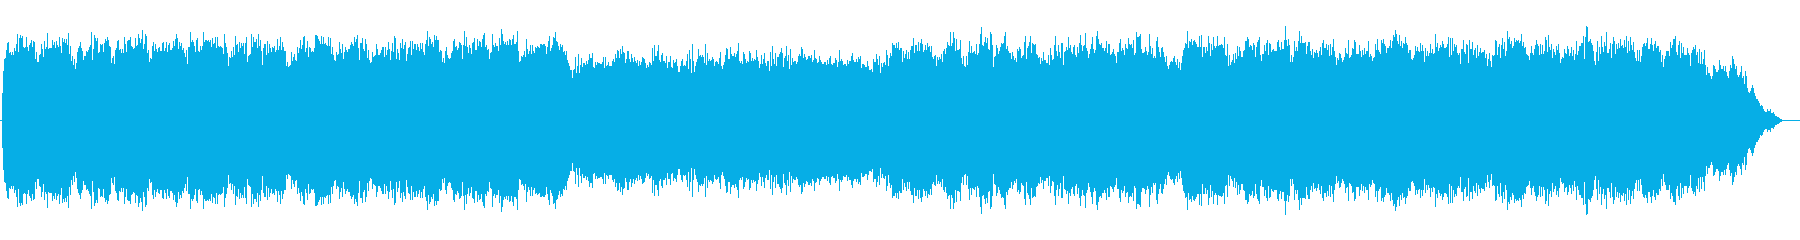 Lyrical flute melody's reproduced waveform